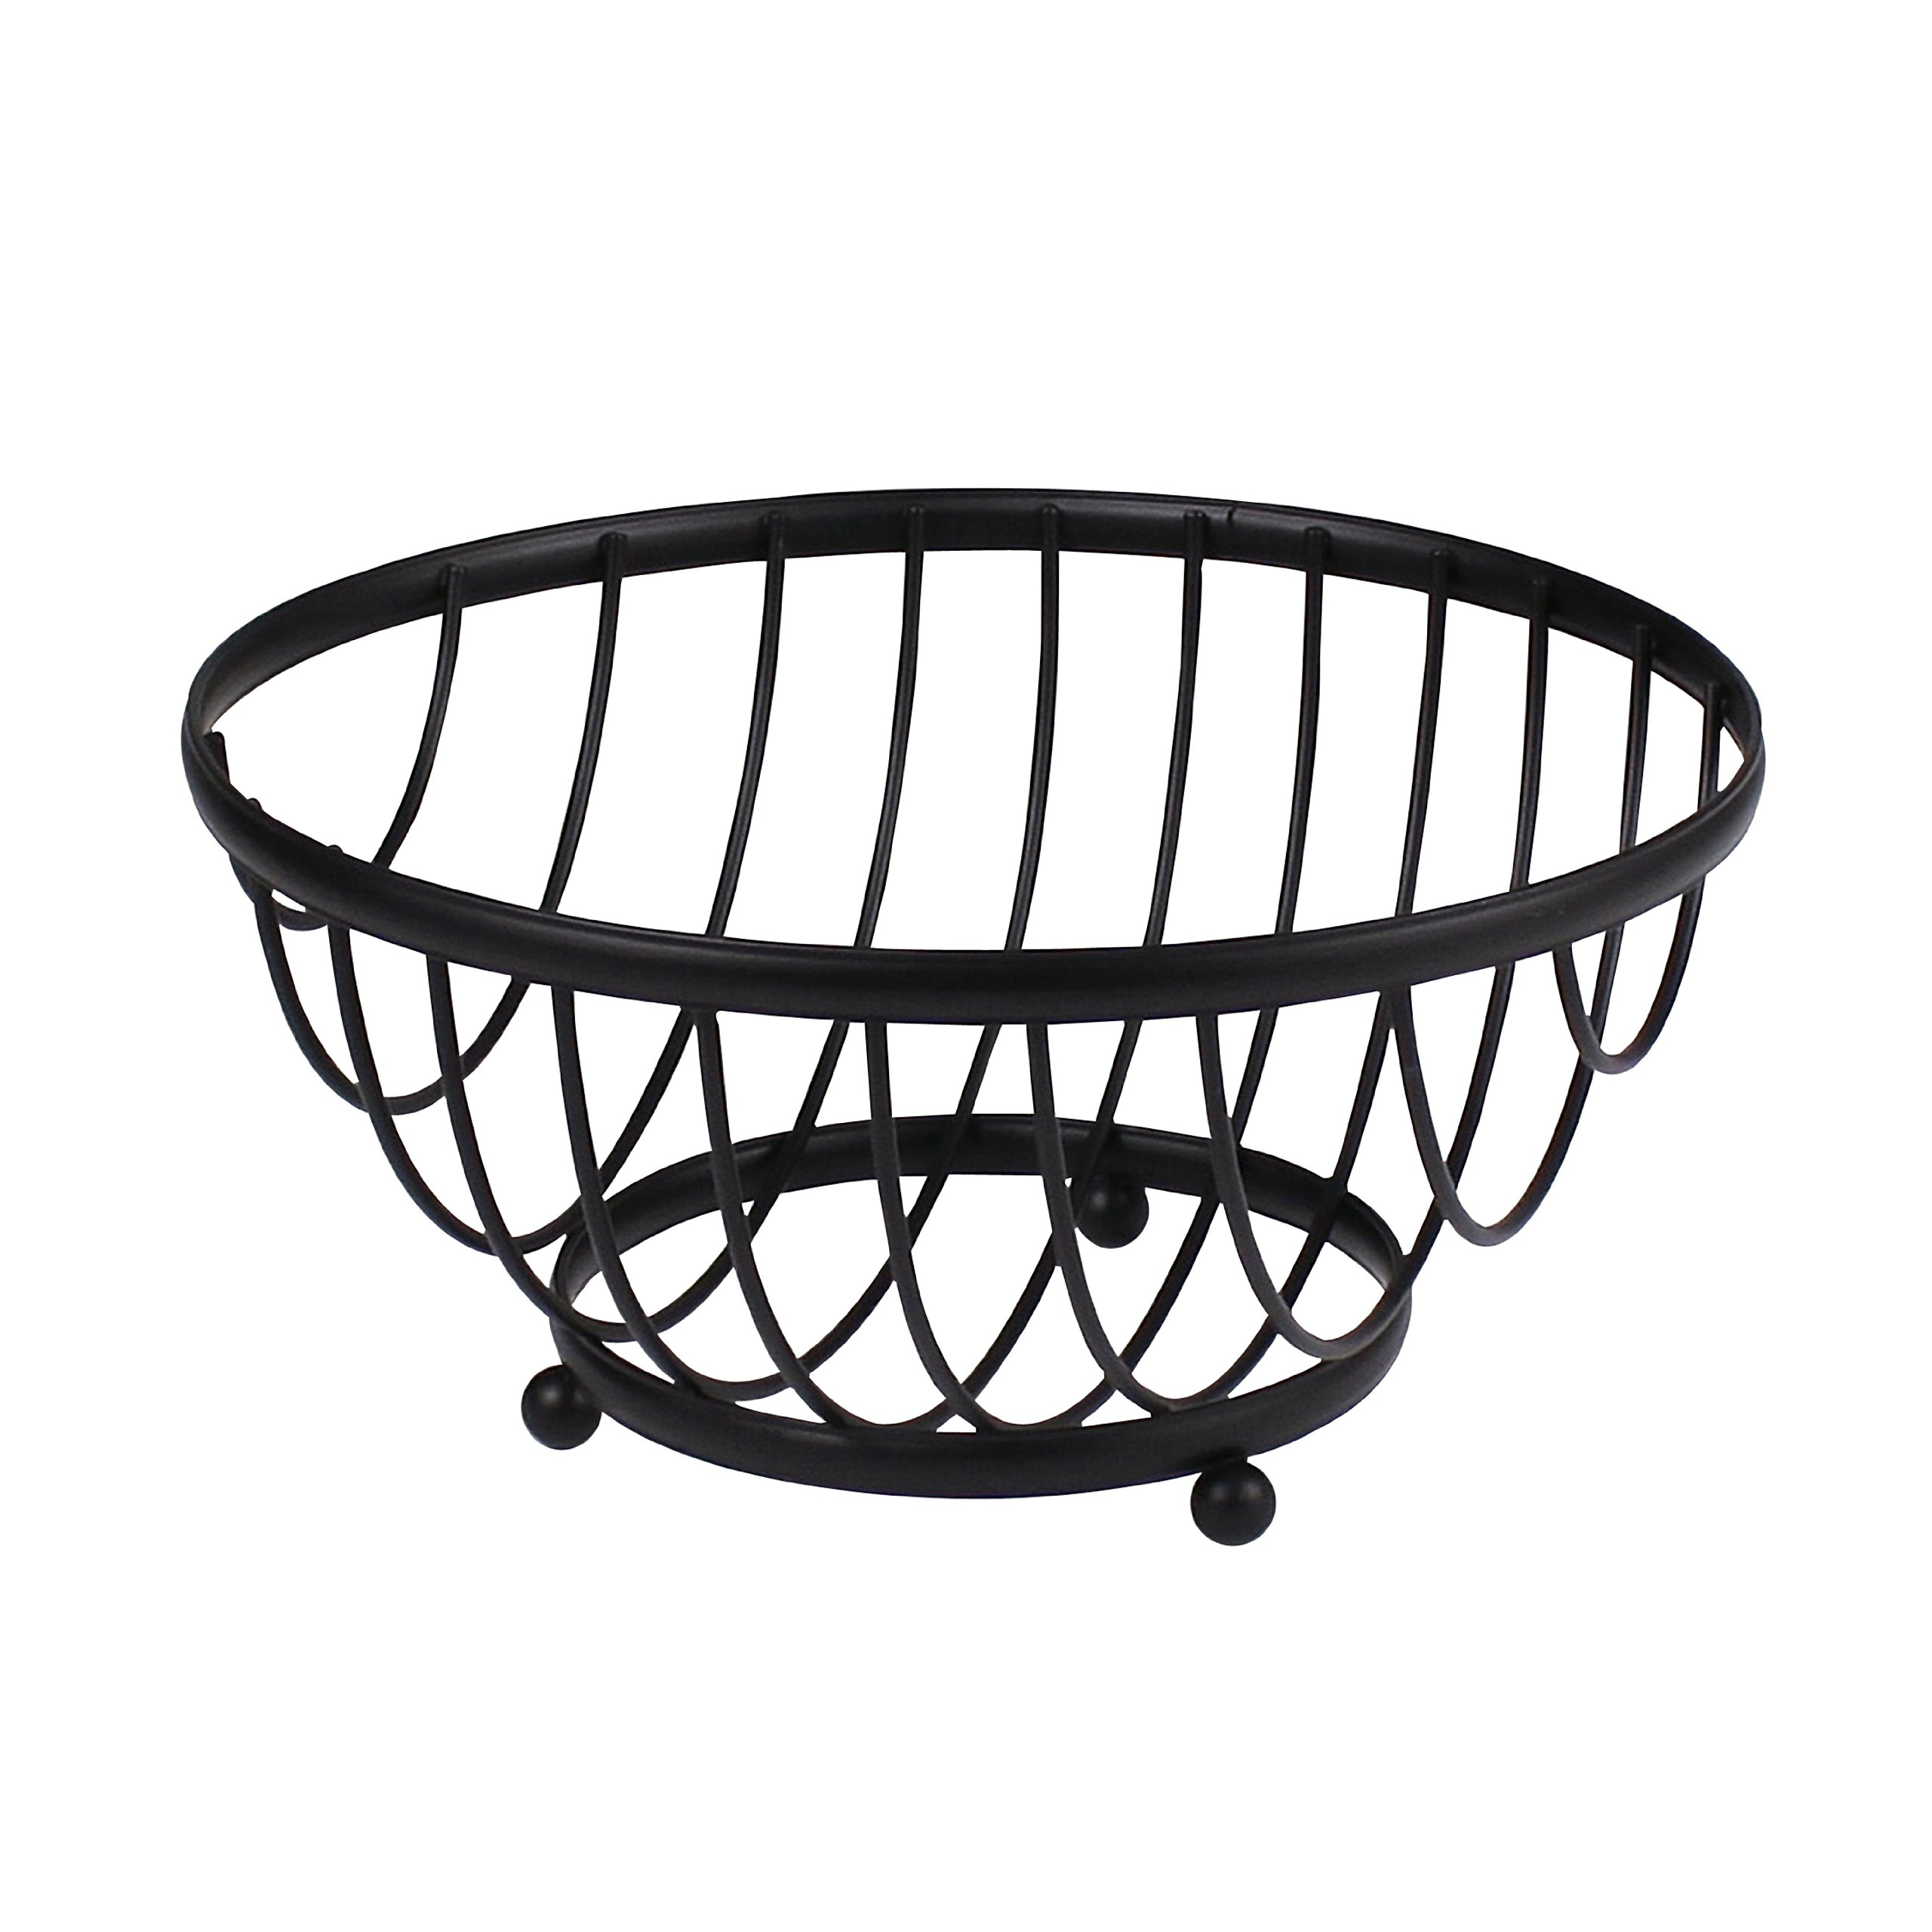 Spectrum Diversified Ashley Fruit Bowl, Black